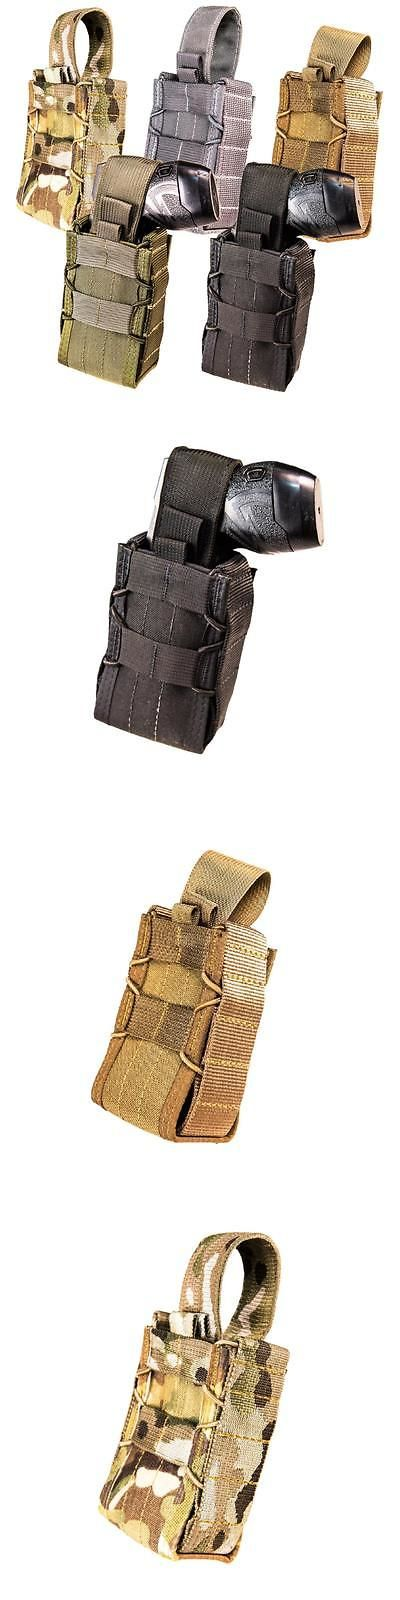 Tactical Molle Pouches 177900: High Speed Gear Stun Gun Taco Molle Pouch/Holster, Holds X26 And X2 BUY IT NOW ONLY: $49.99